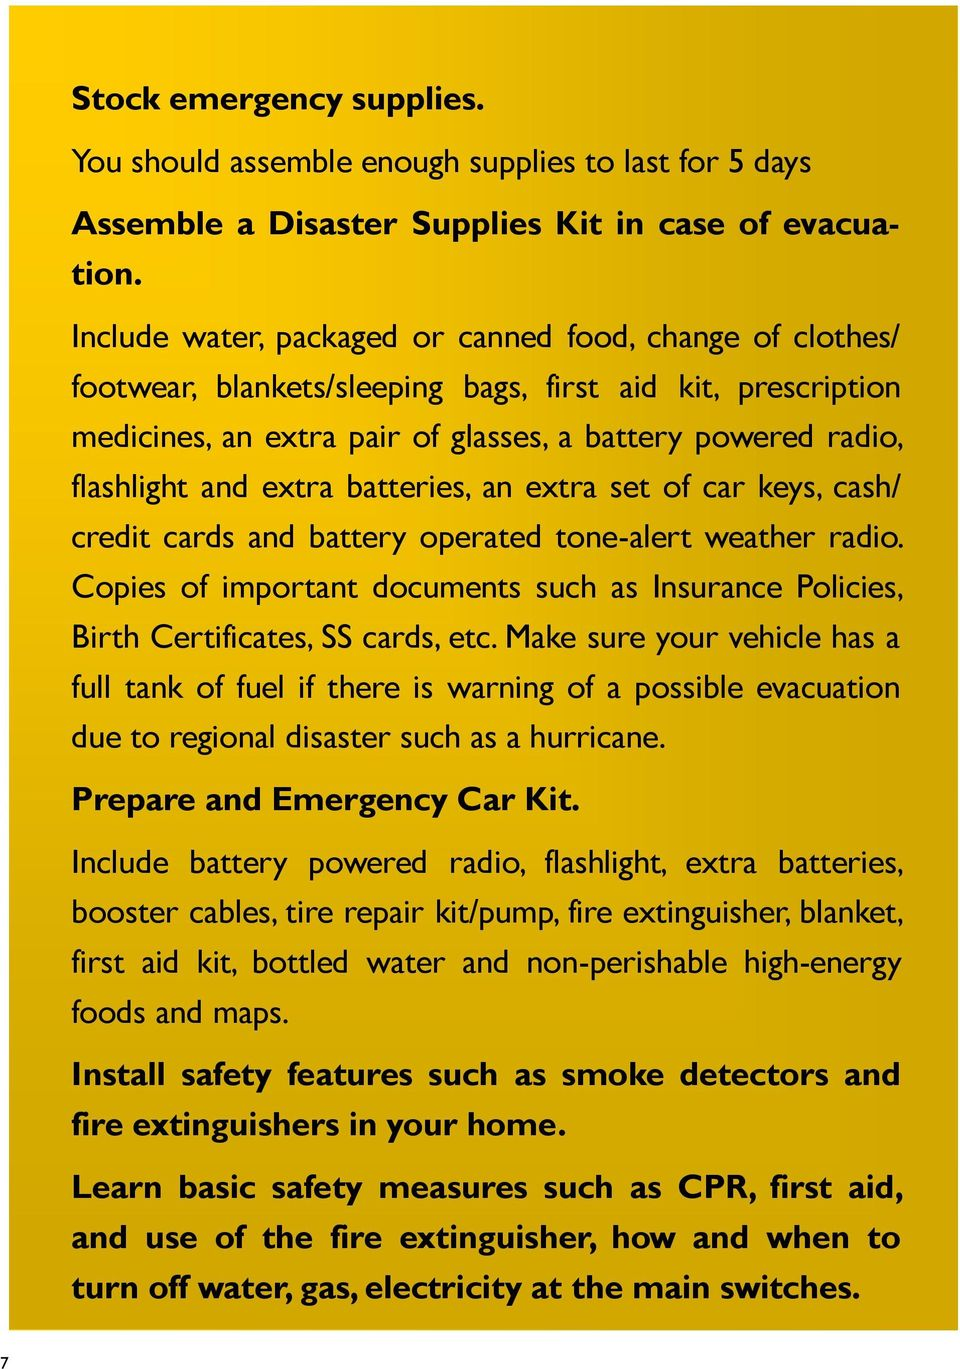 extra batteries, an extra set of car keys, cash/ credit cards and battery operated tone-alert weather radio.